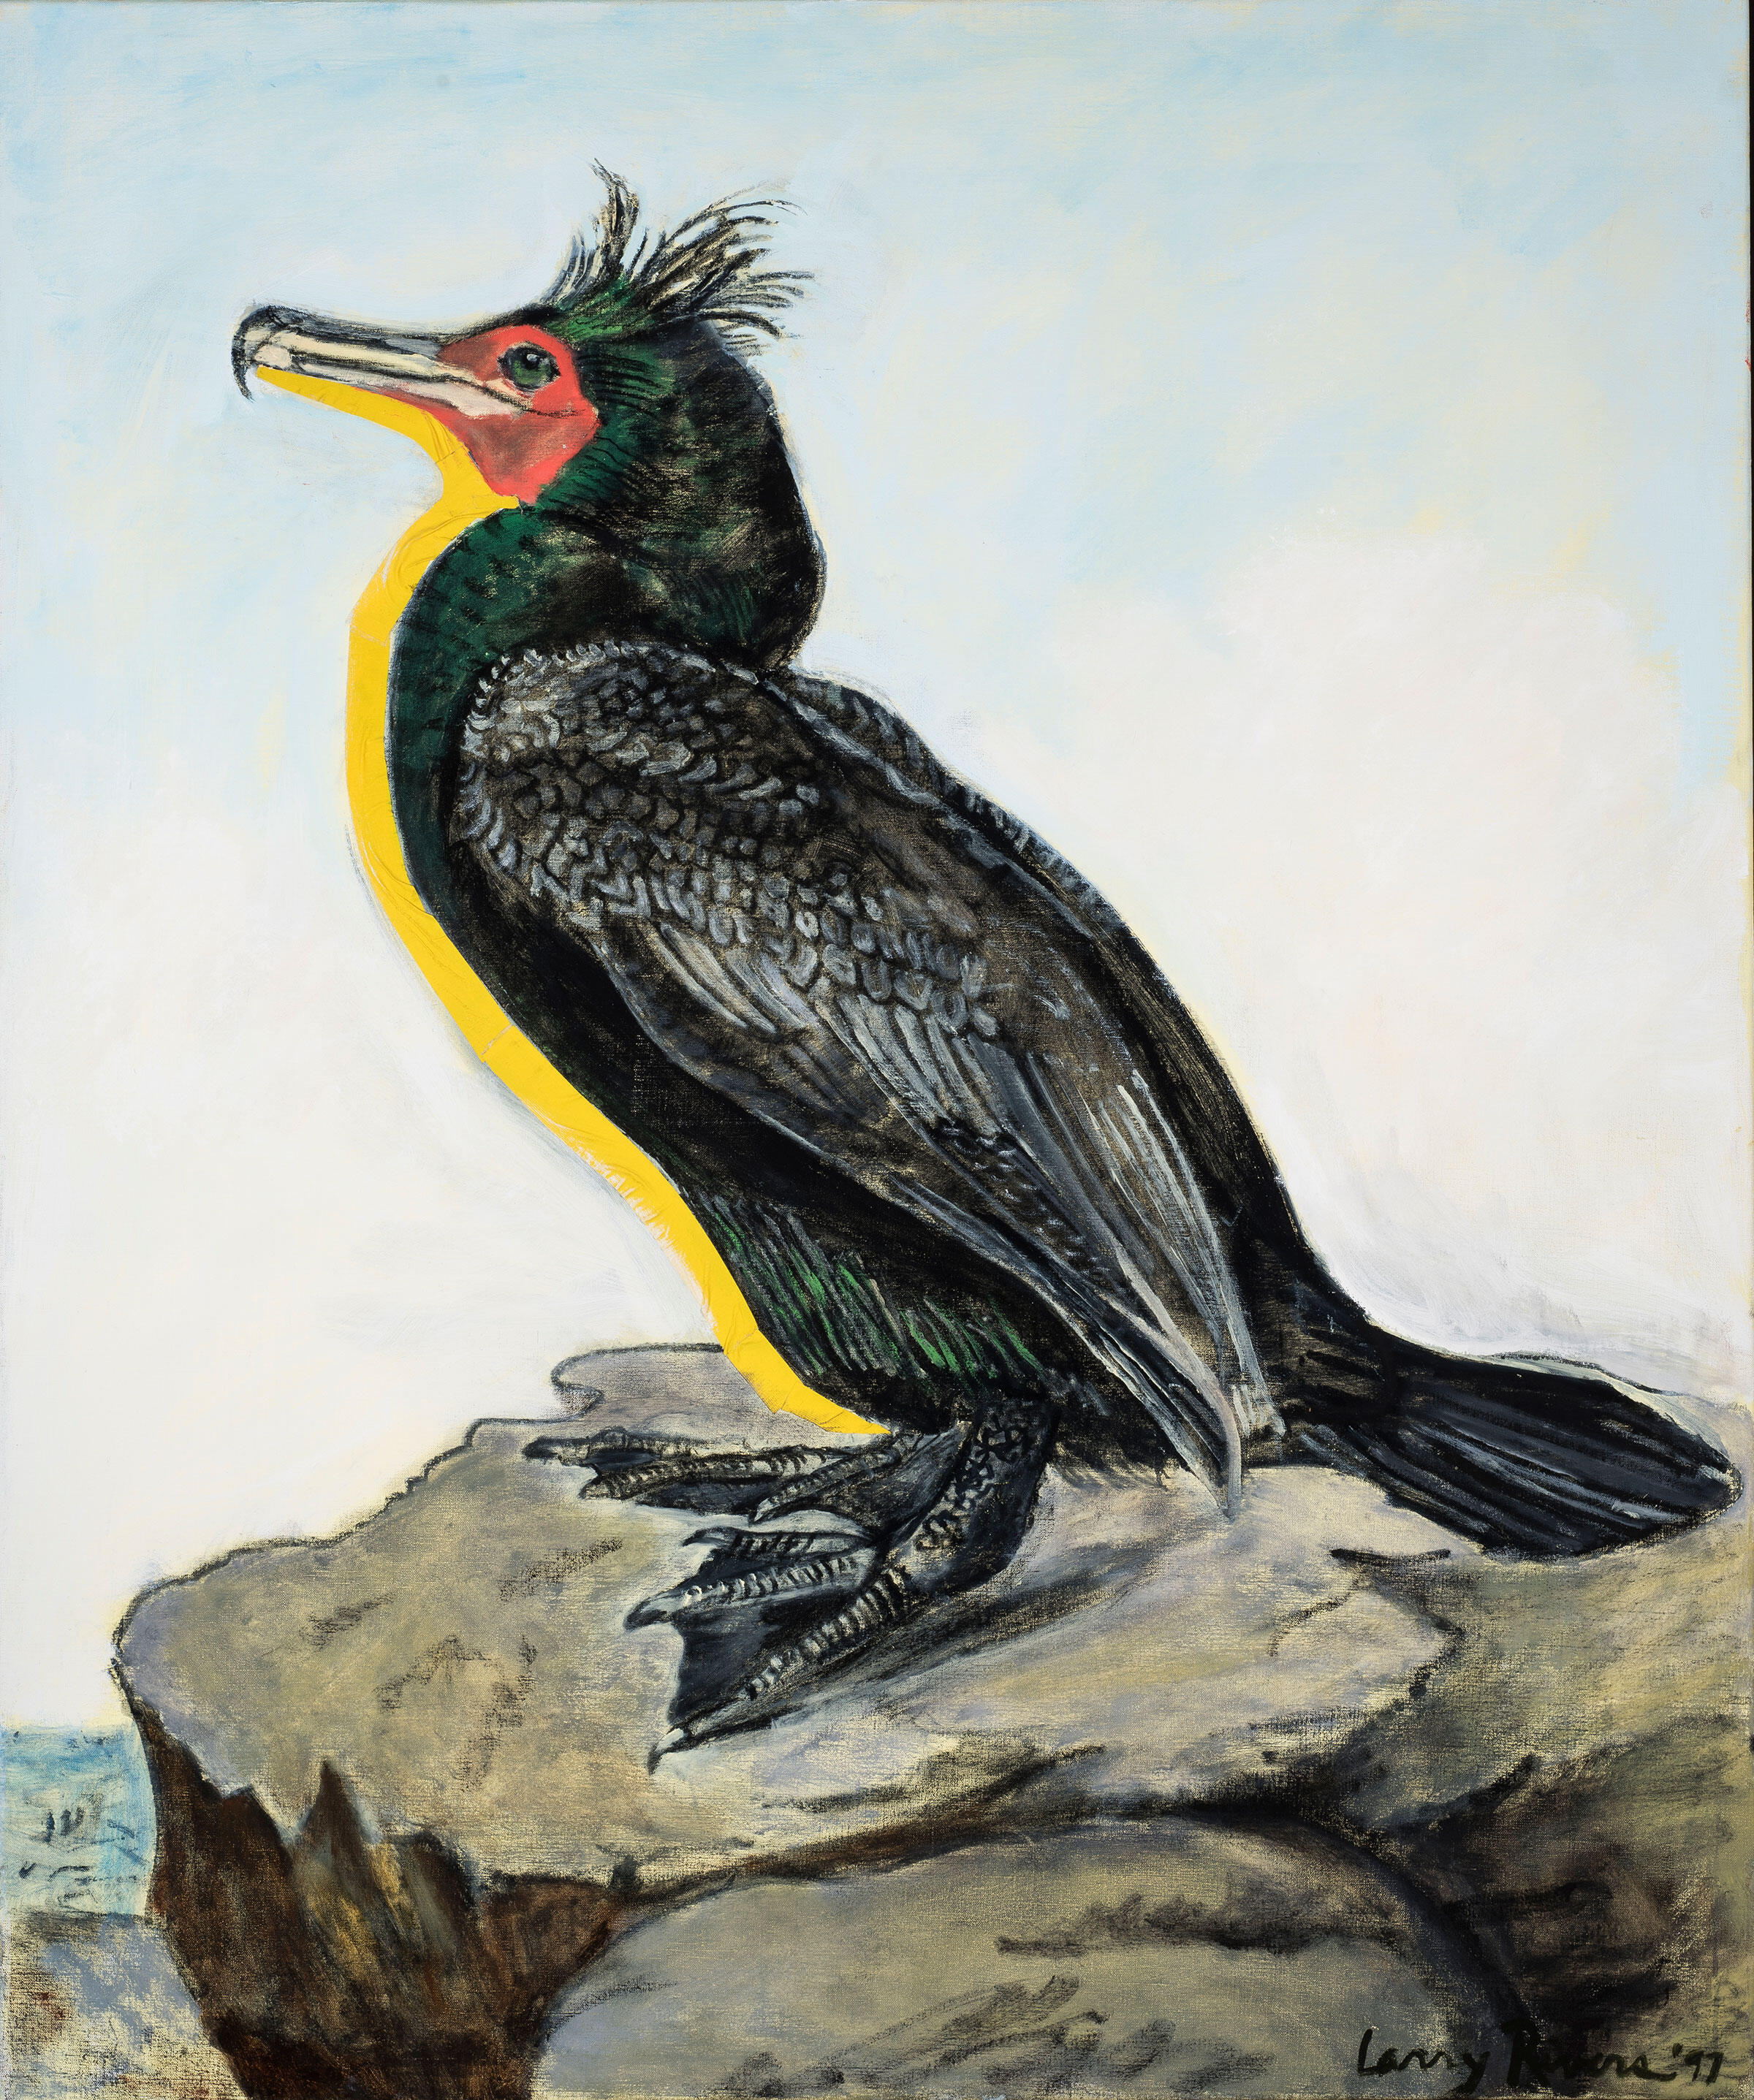 Double-crested Cormorant. Painting: Courtesy of the Larry Rivers Foundation and gallery